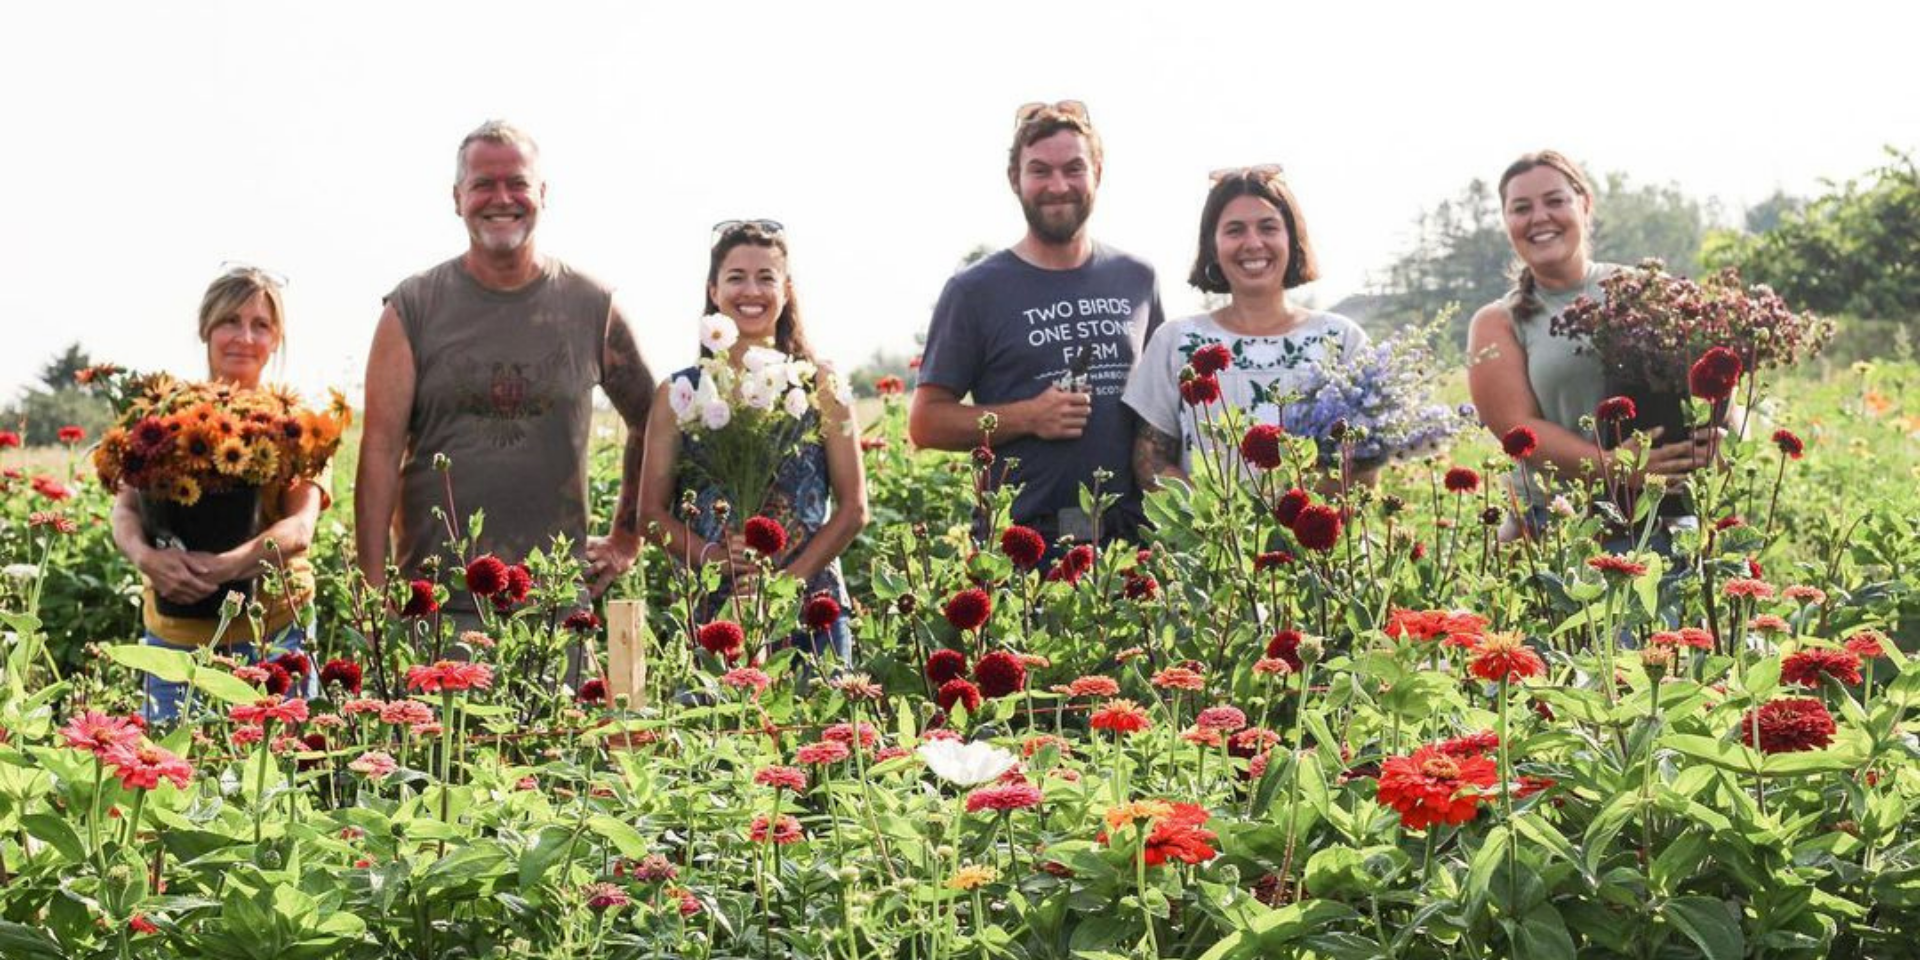 Image of team in the field holding flowers